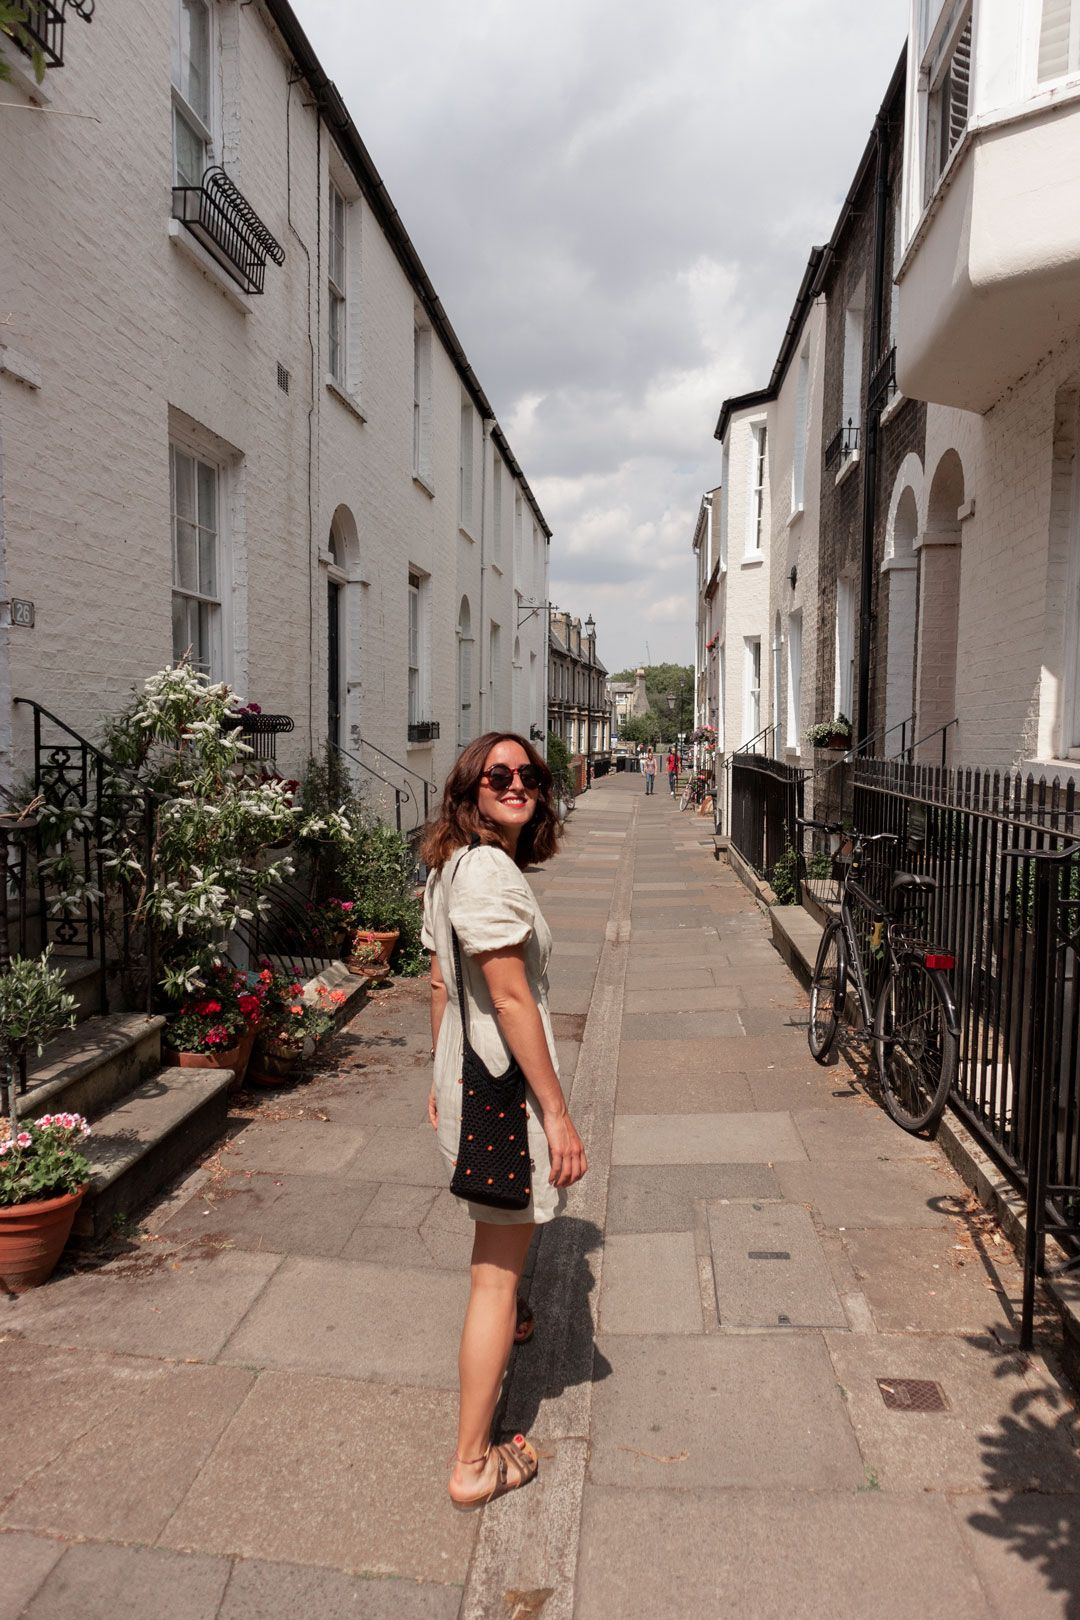 So I am not the most original fashionista. So what?|Originality in fashion |#Cambridge|#fashioninspiration|#linen #minidress #lino #linendress #buttonwdowndress #ZARAdress|#summerlook #summeroutfit #summerfashion #summerstyle|#birckenstock|#minimalstyle #streetstylechic #effortlesschic|How to style a linen minidress|ZARA, Urban Outfitters, ASOS, Realisation Par|#retro|#crochet #crochetbag|Saida Antolin - She talks Glam|Cambridge Blogger